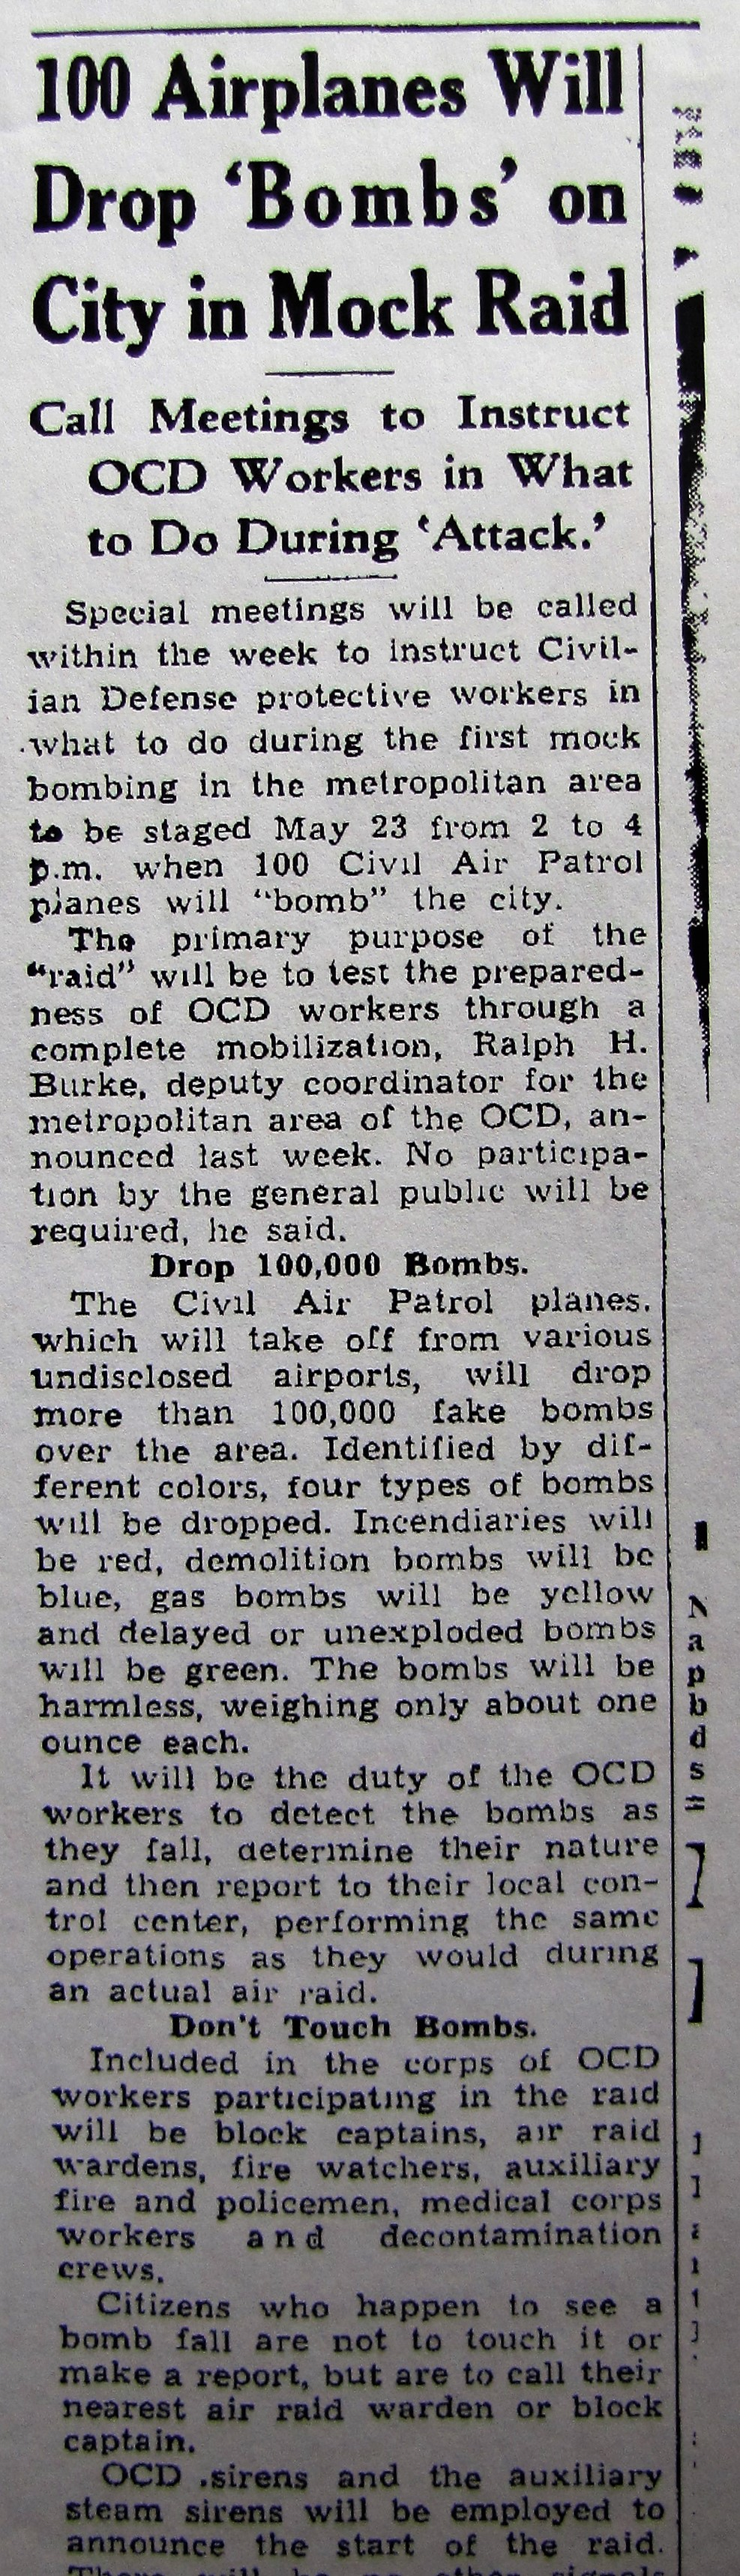 1943 100 Airplanes Will Drop 'Bombs' on City in Mock Raid